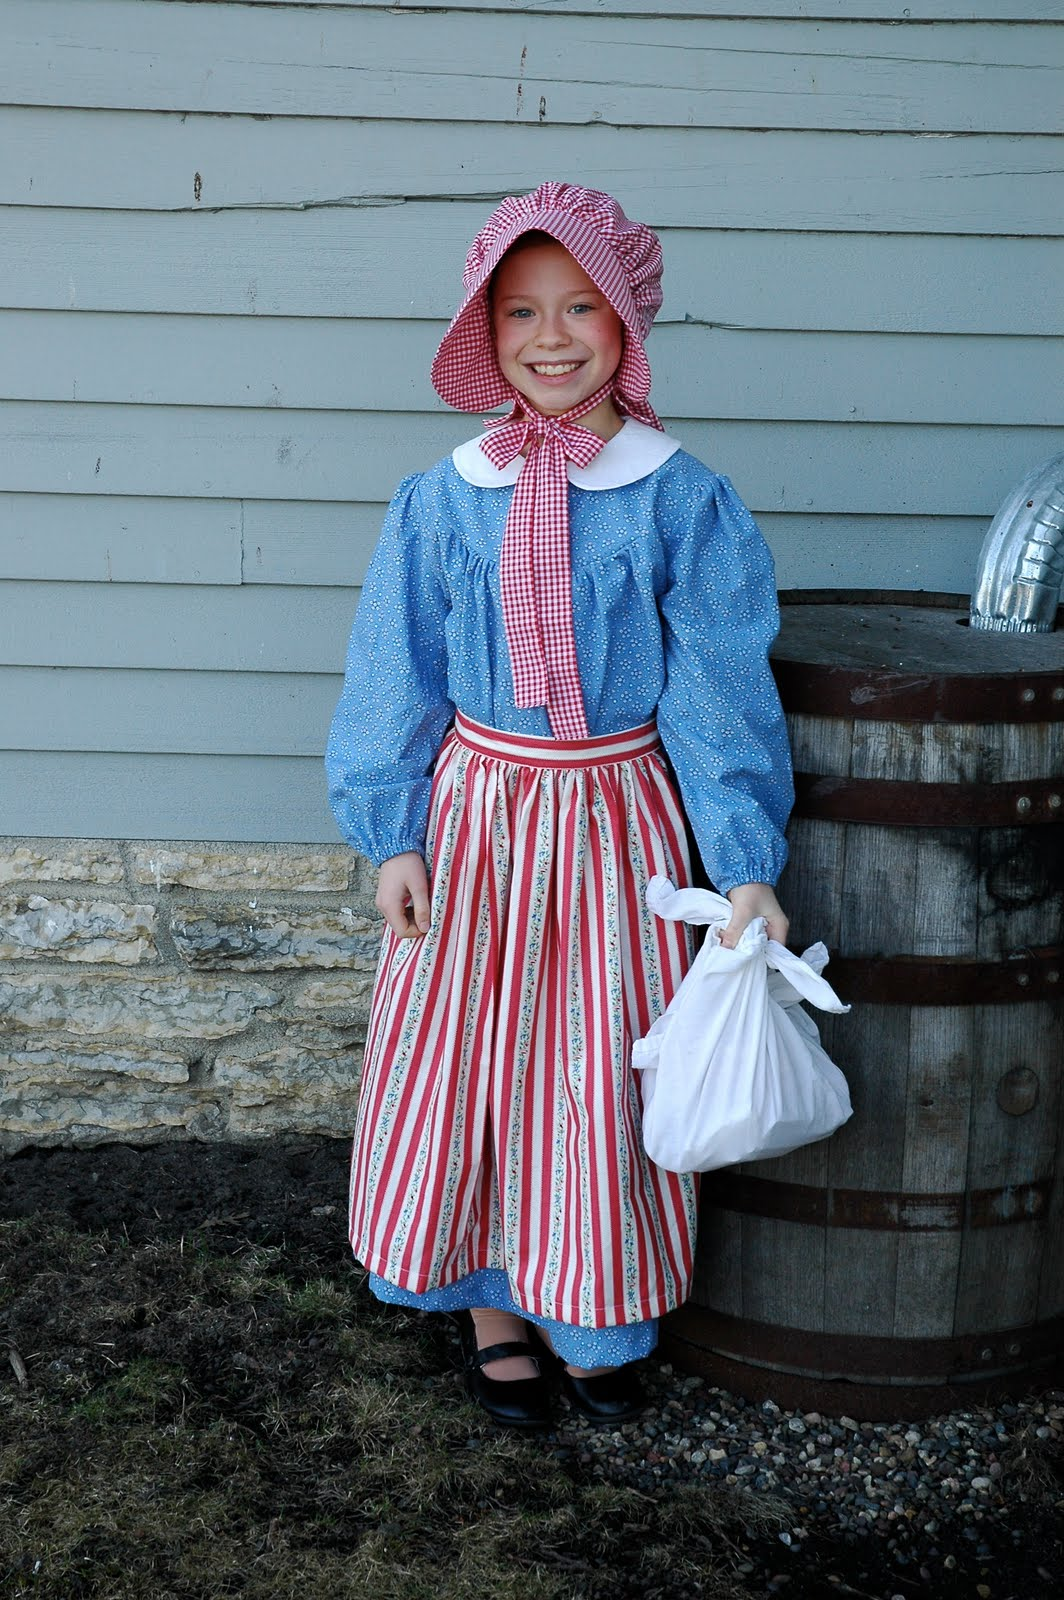 The West Family Pioneer Girl